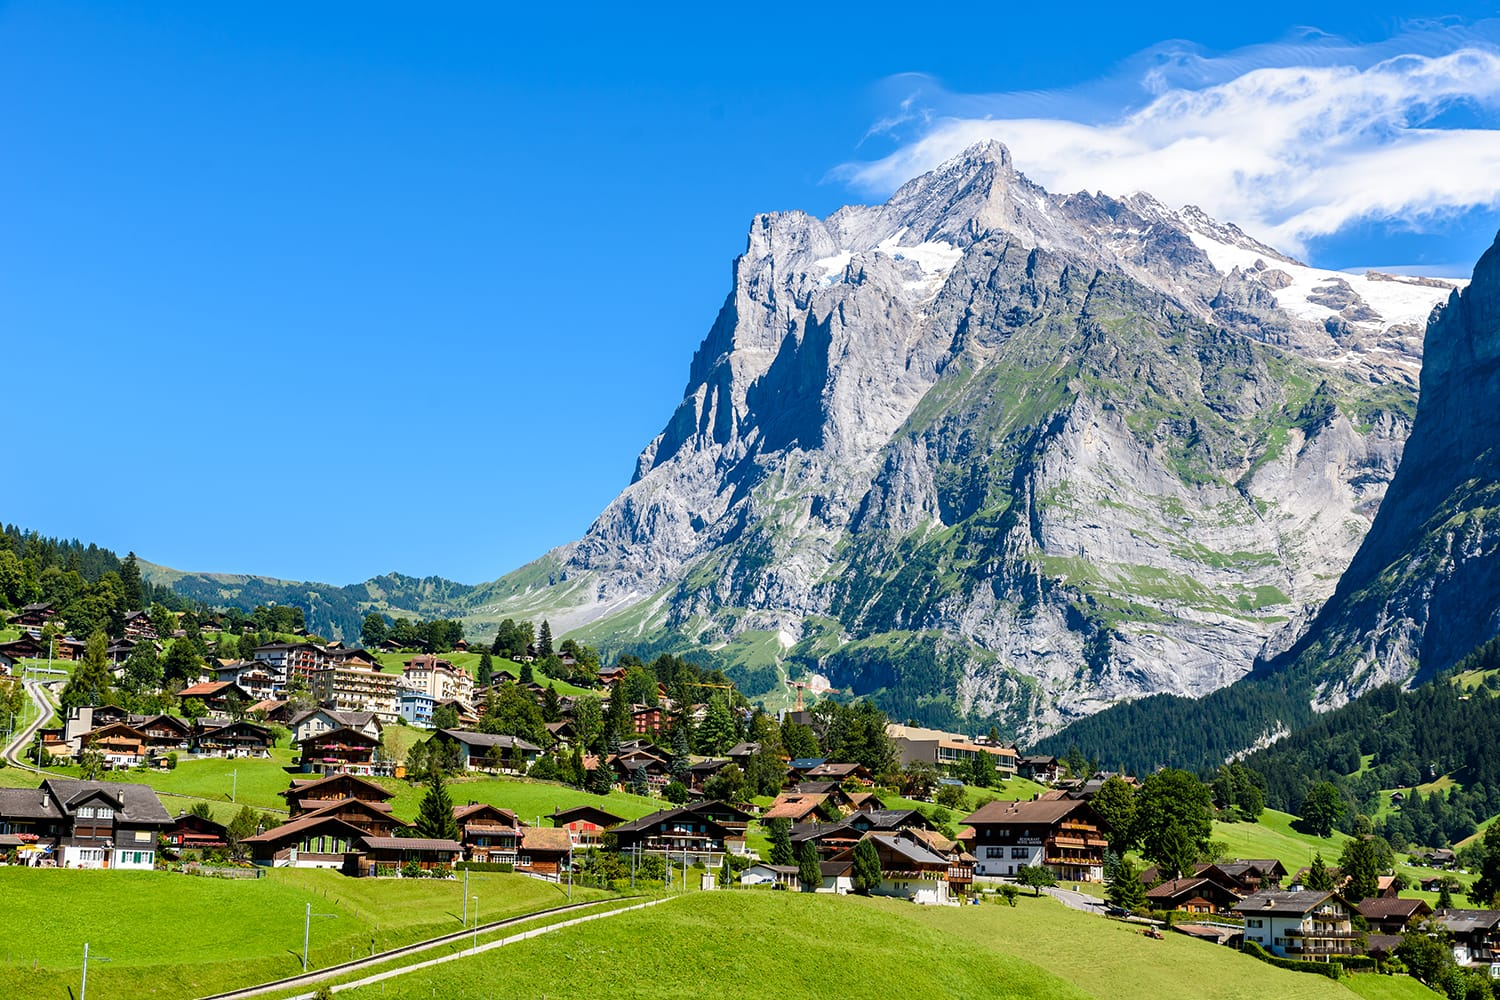 Grindelwald - beautiful village in mountain scenery - Switzerland